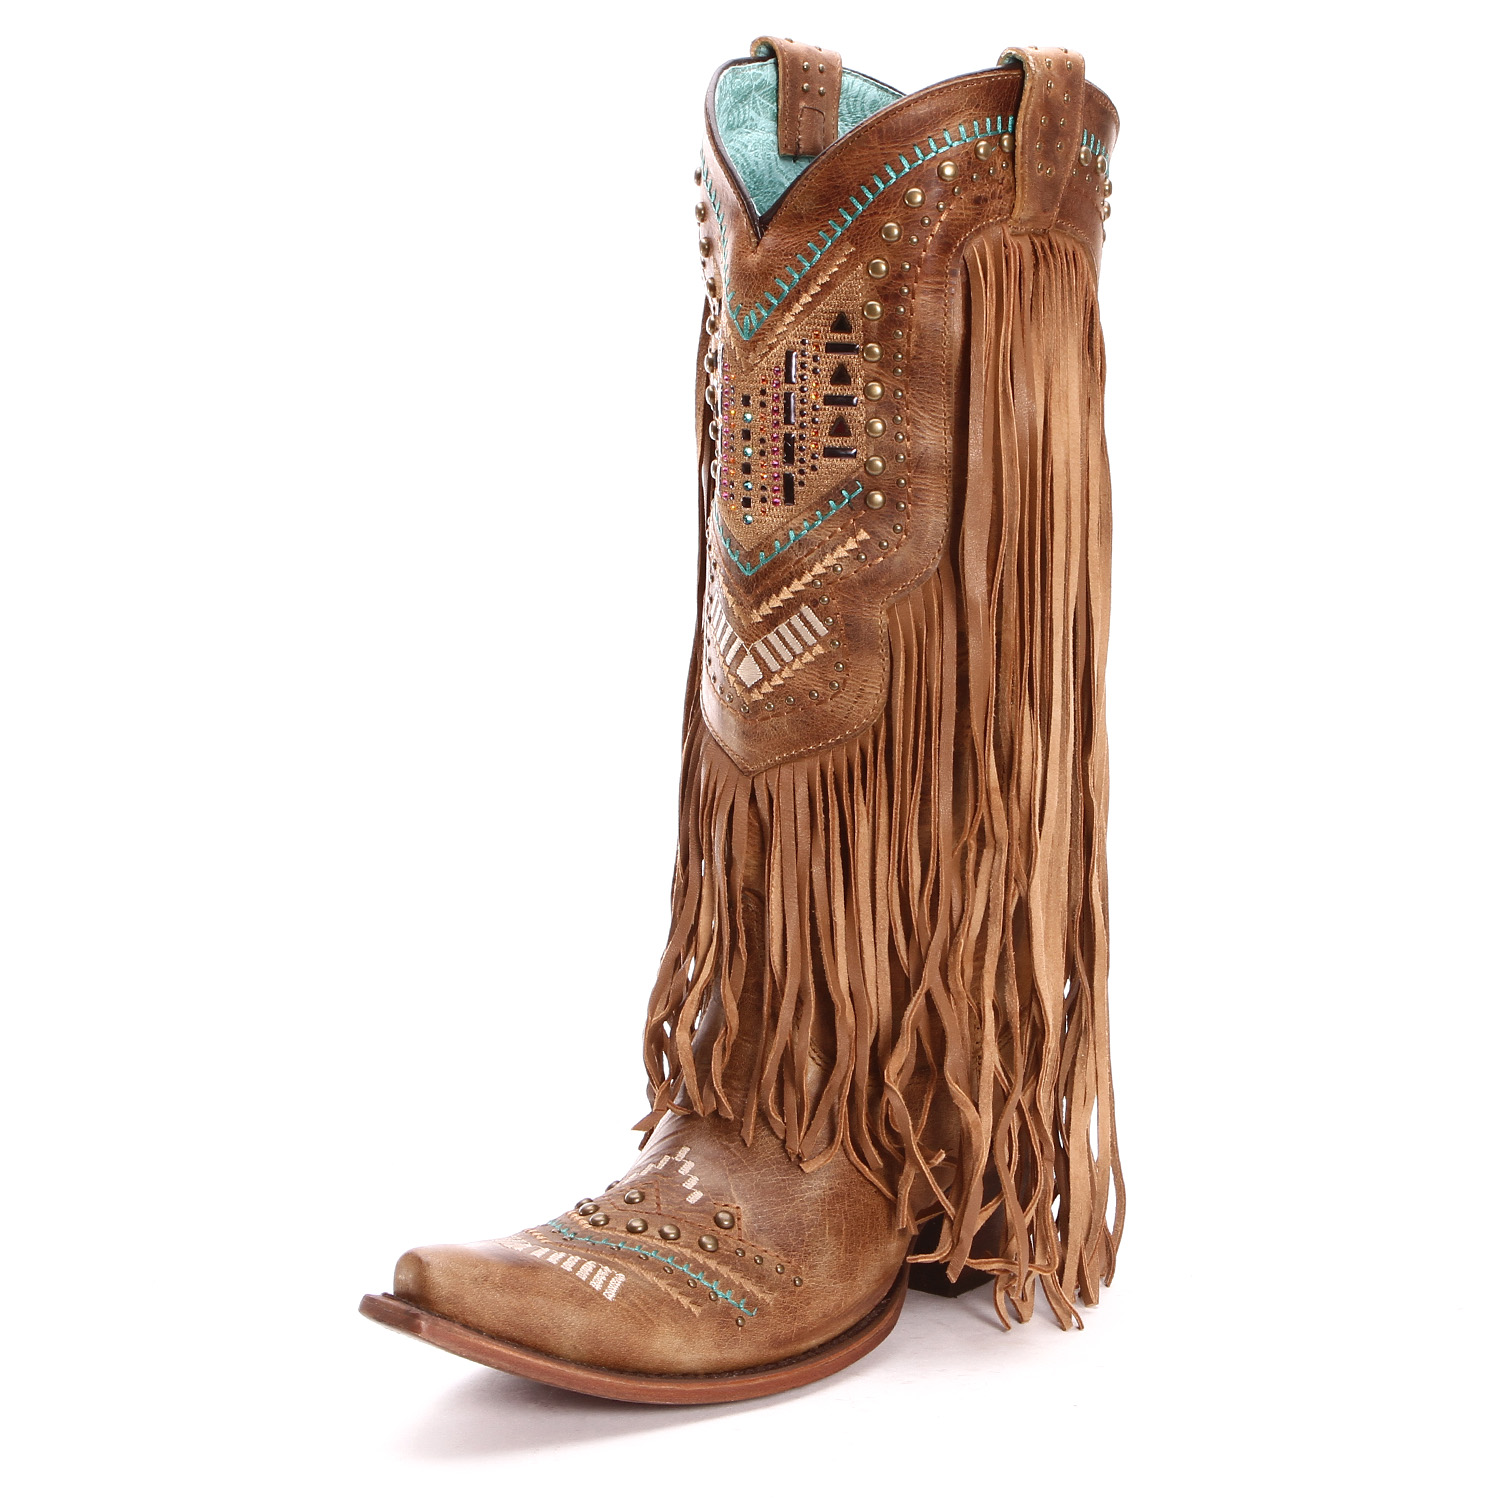 Corral Women's Fringe Snip Toe Tan Cowgirl Boots